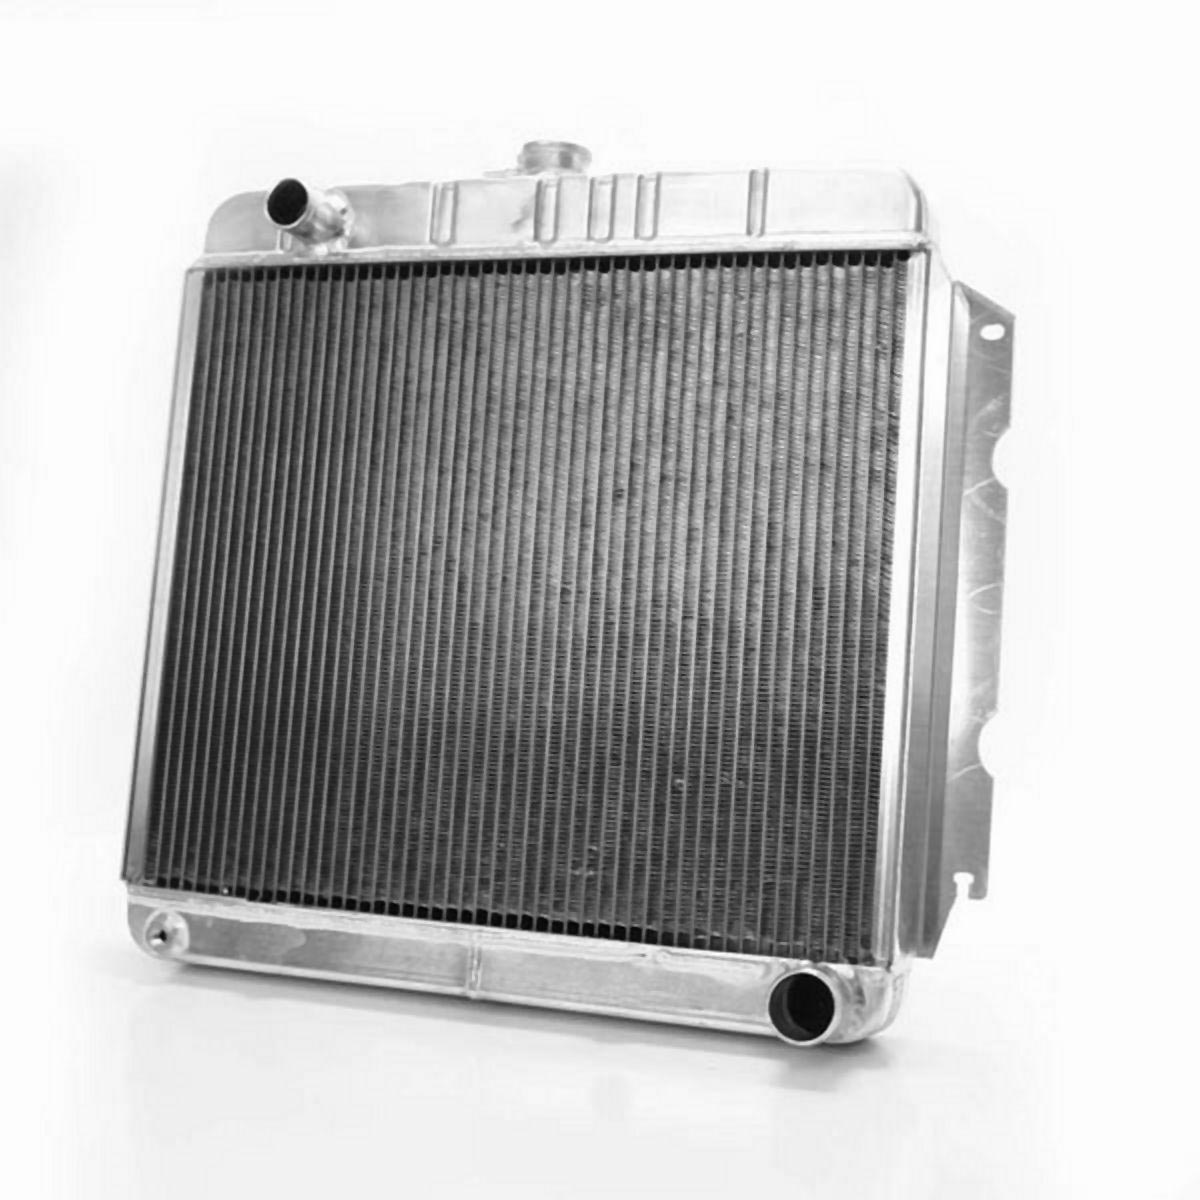 1970 Dodge Coronet Griffin Aluminum Radiator - Part Number 5-00043